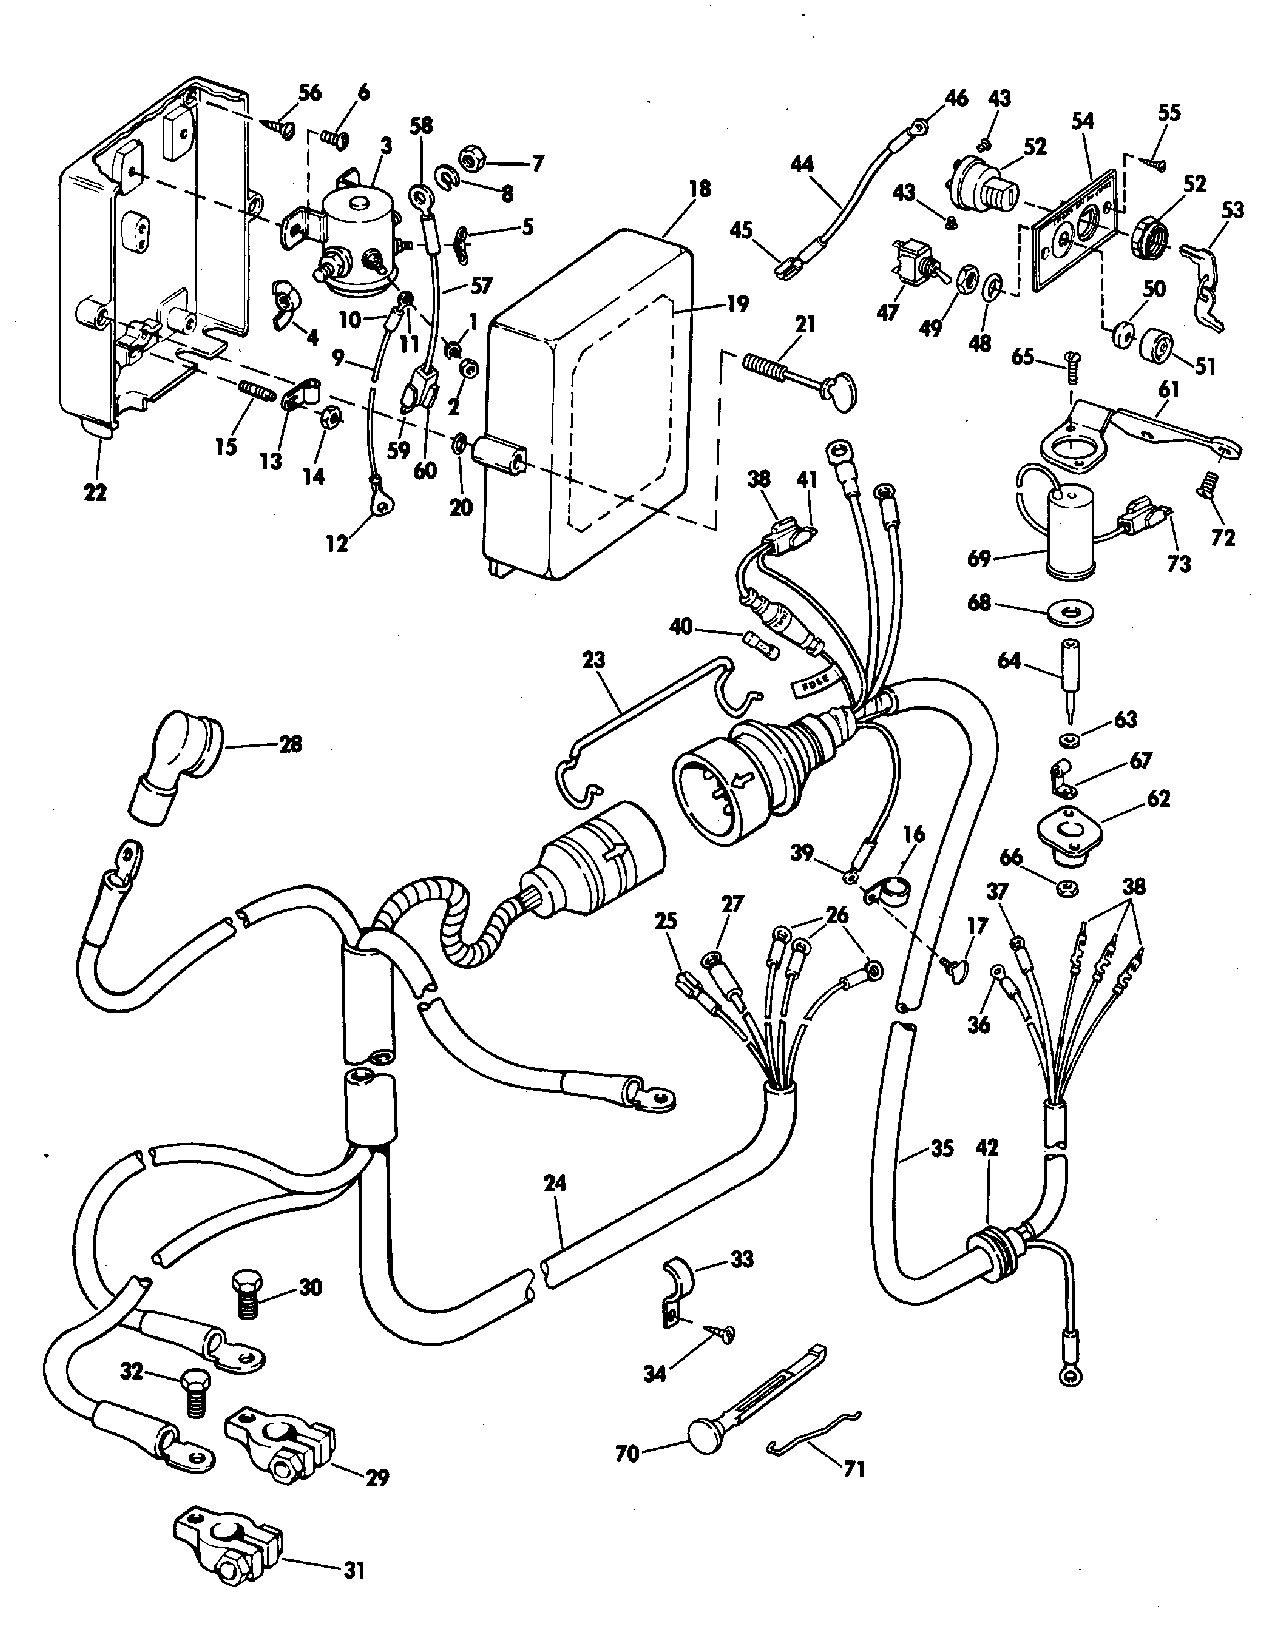 Excellent evinrude outboard wiring diagram images the best